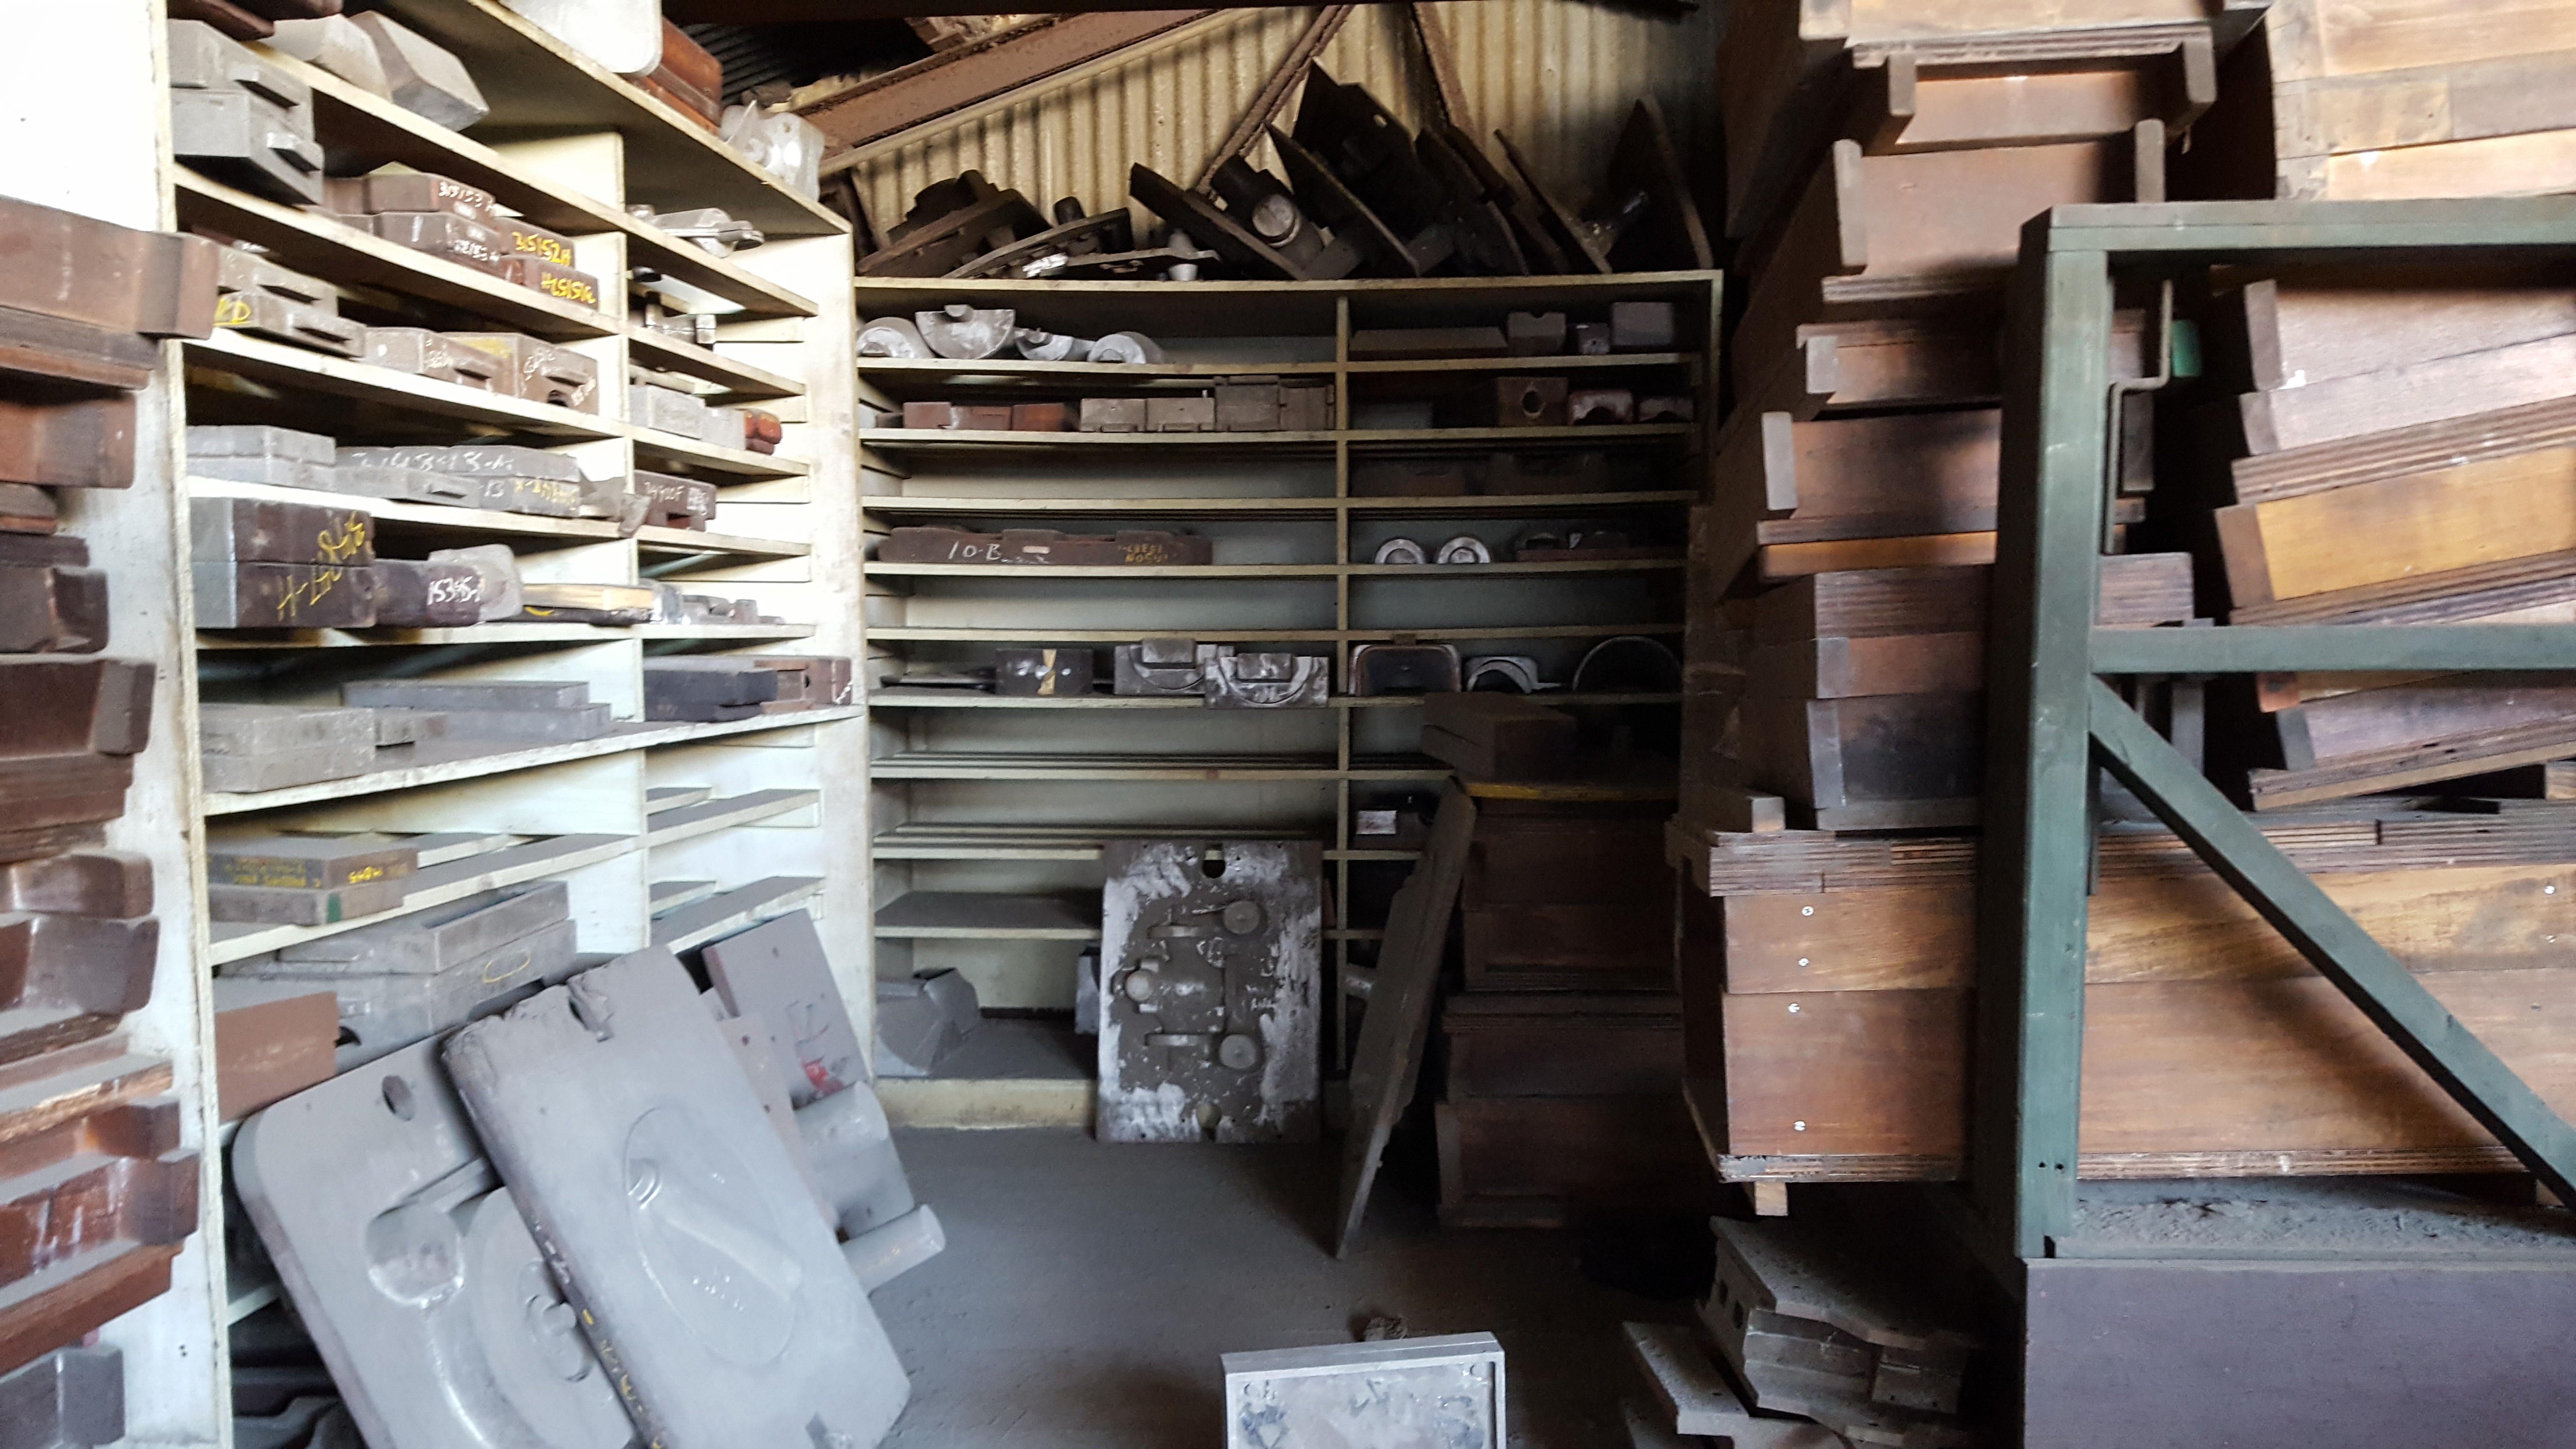 Lot 124 - ALL UPSTAIRS CONTENTS, MOLDS, ETC